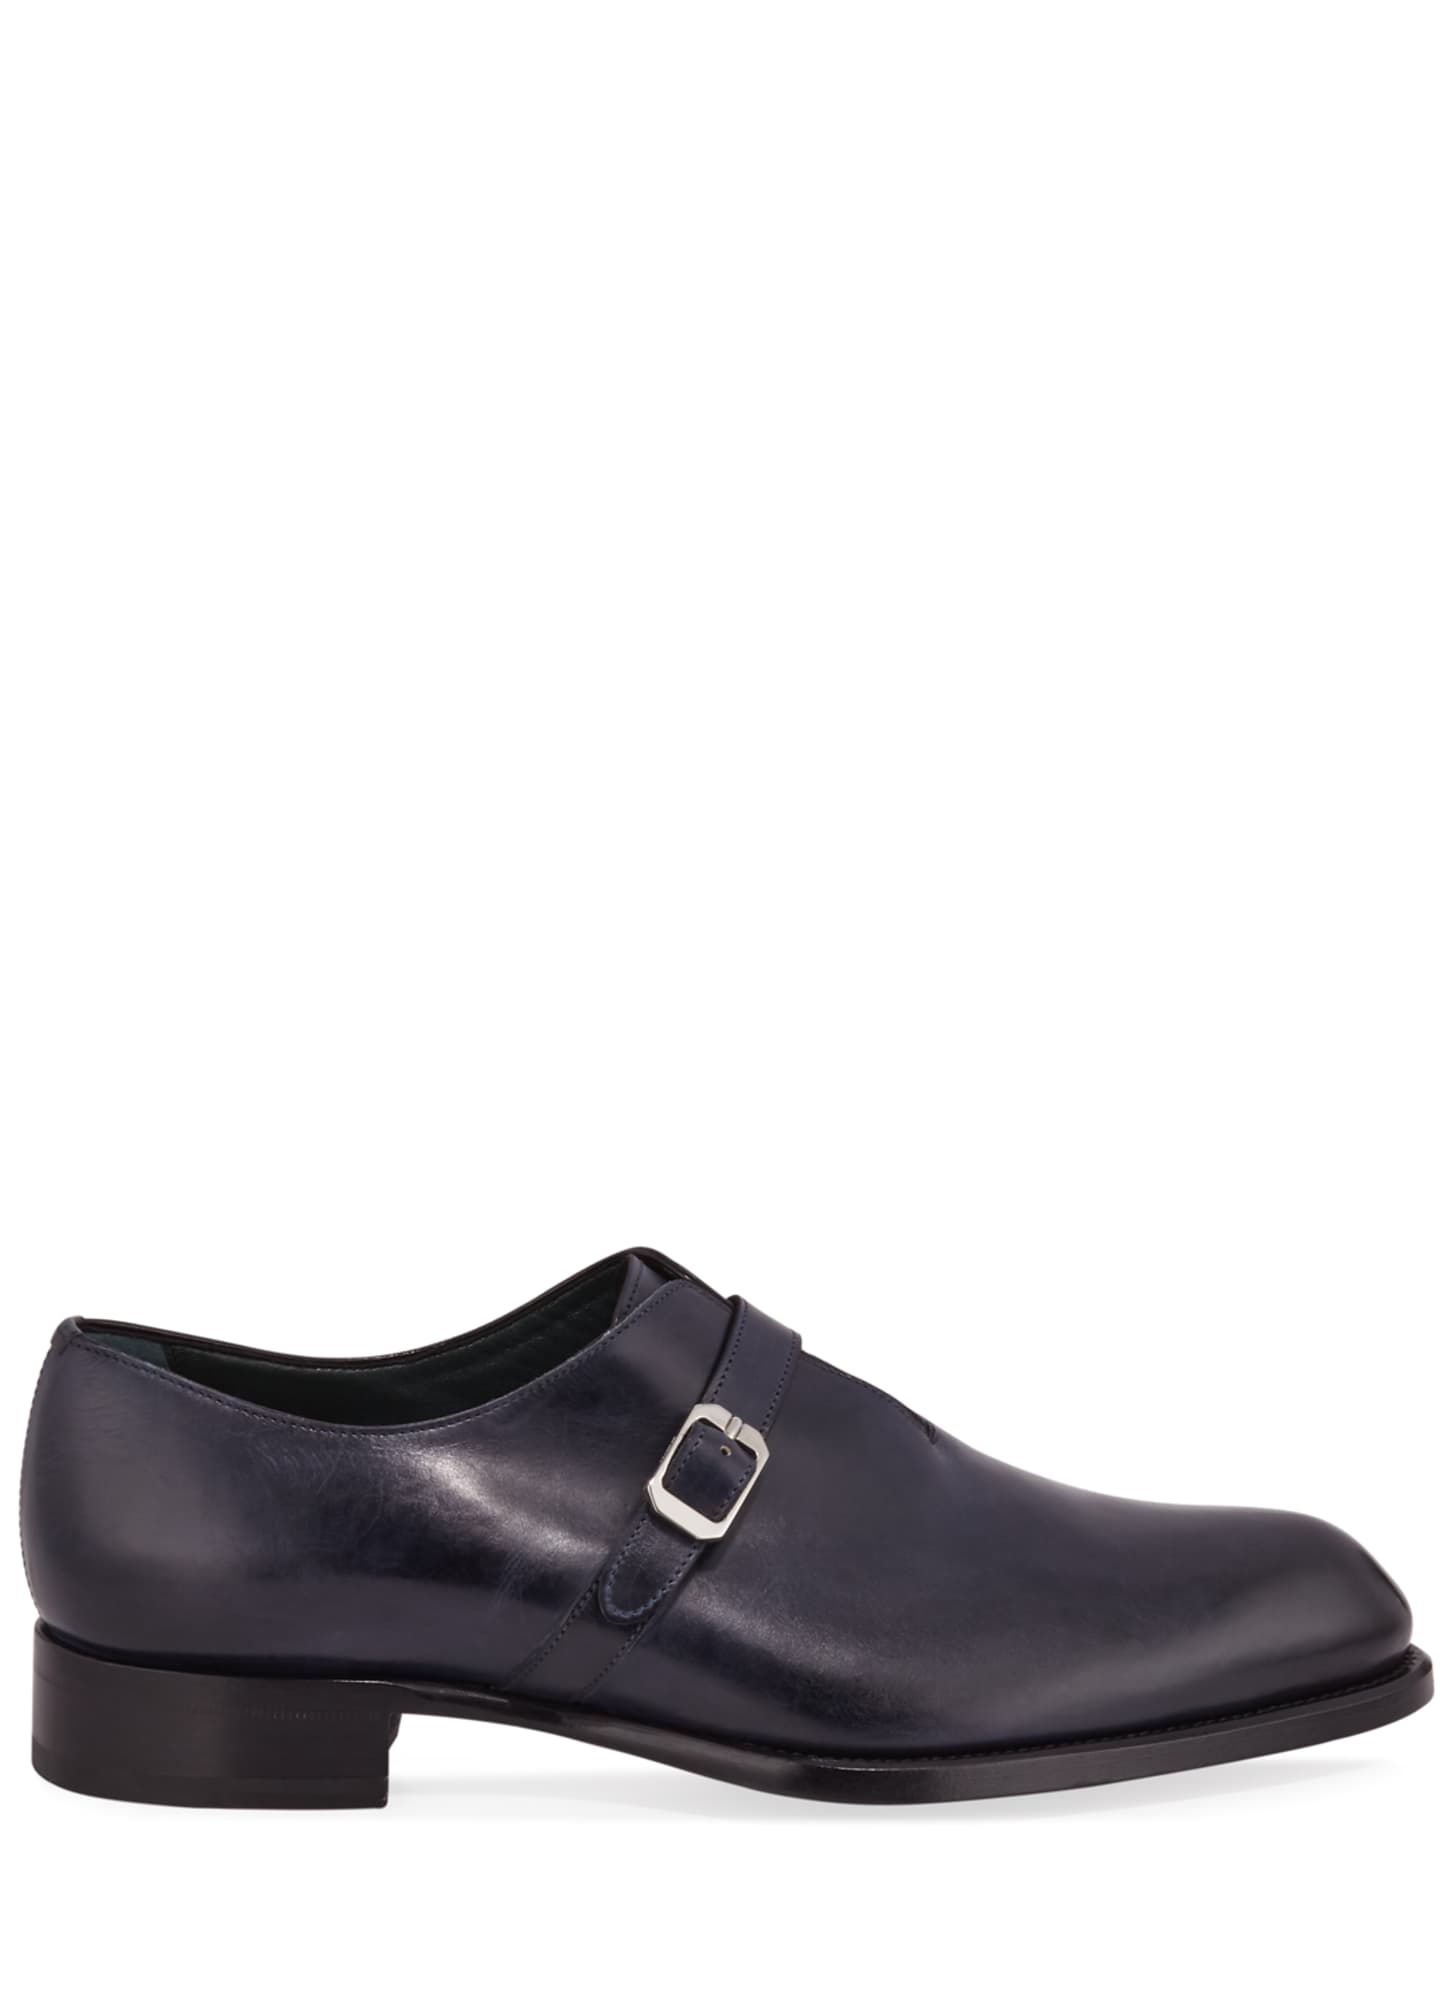 Image 3 of 3: Men's Benedict Monk-Strap Loafers